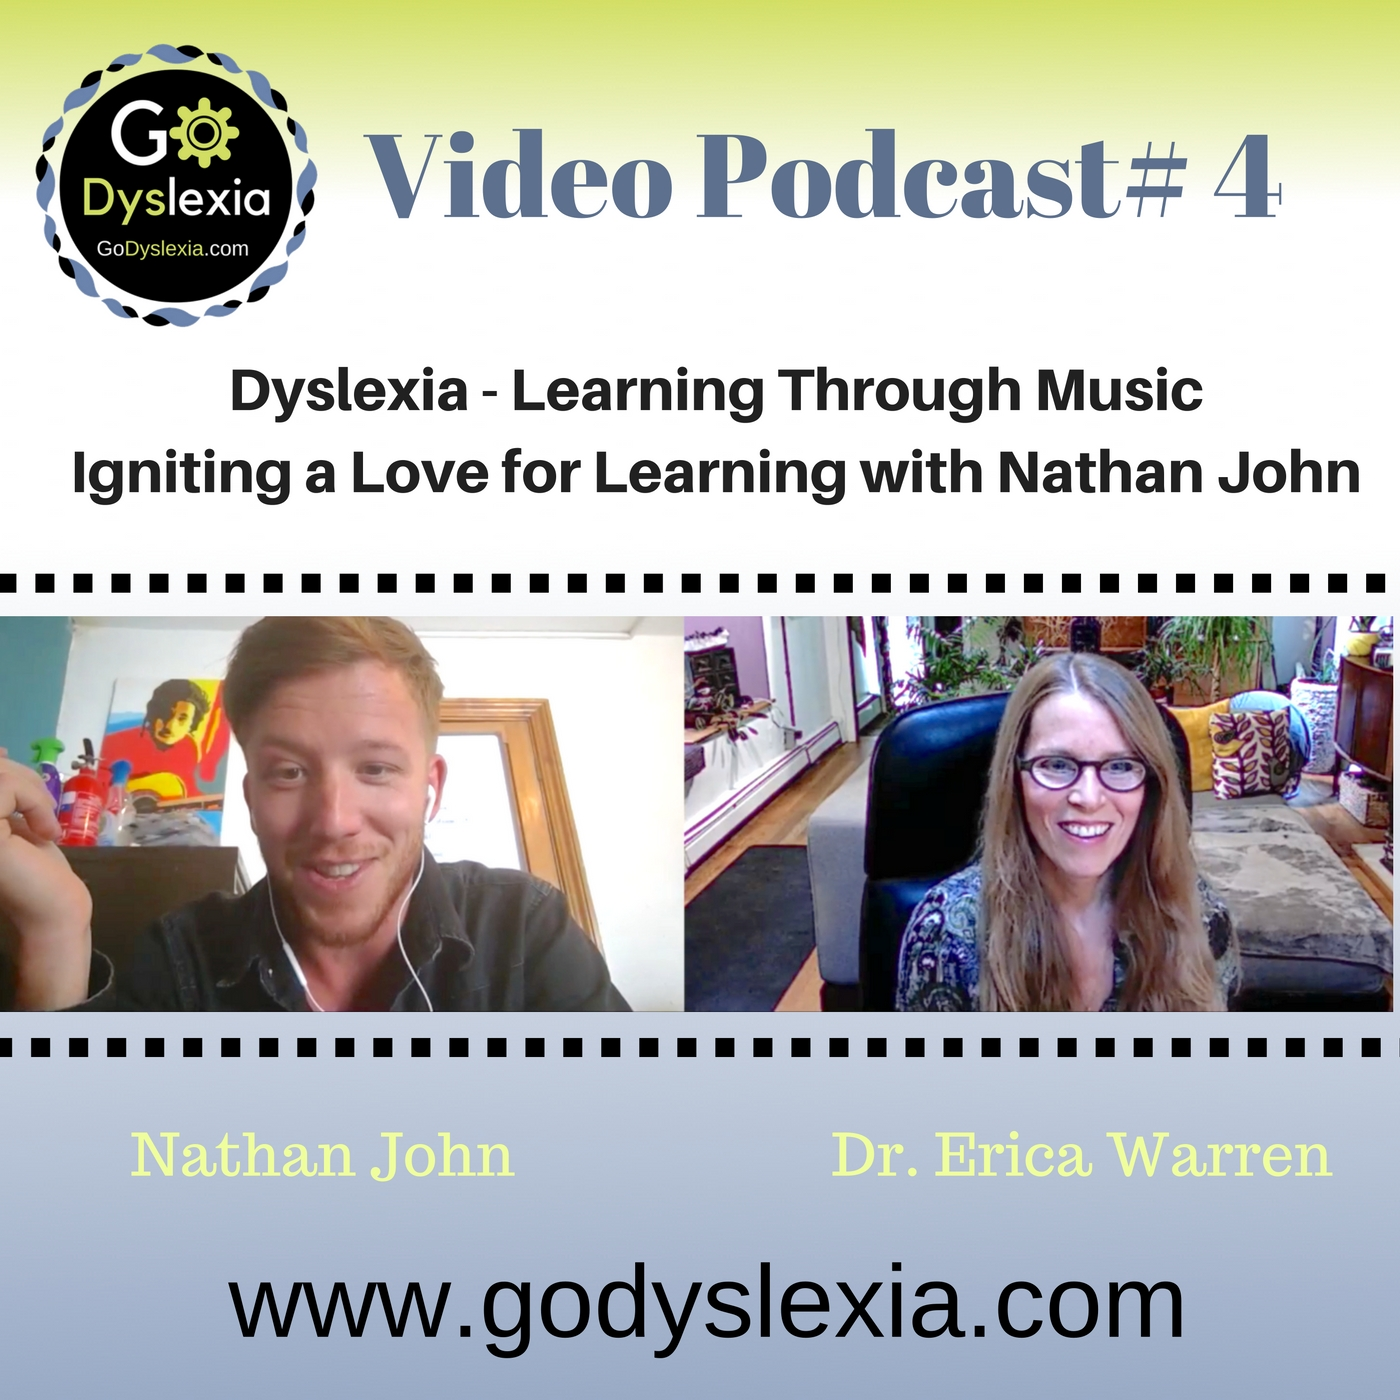 Go Dyslexia Episode 4: Dyslexia and Learning Through Music: A Podcast with Nathan John